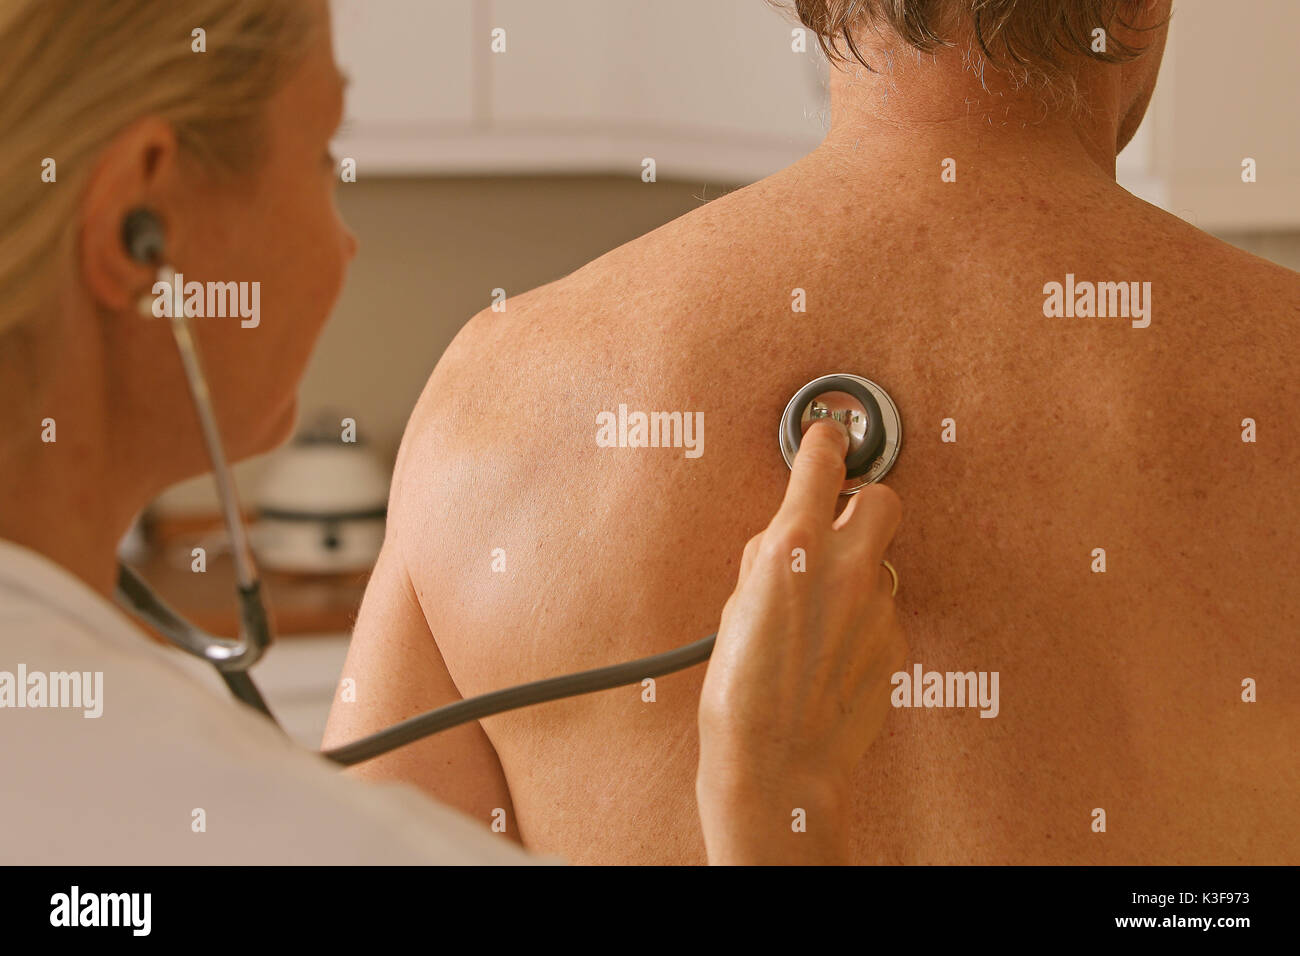 patient at stethoscope listens to doctor - Stock Image